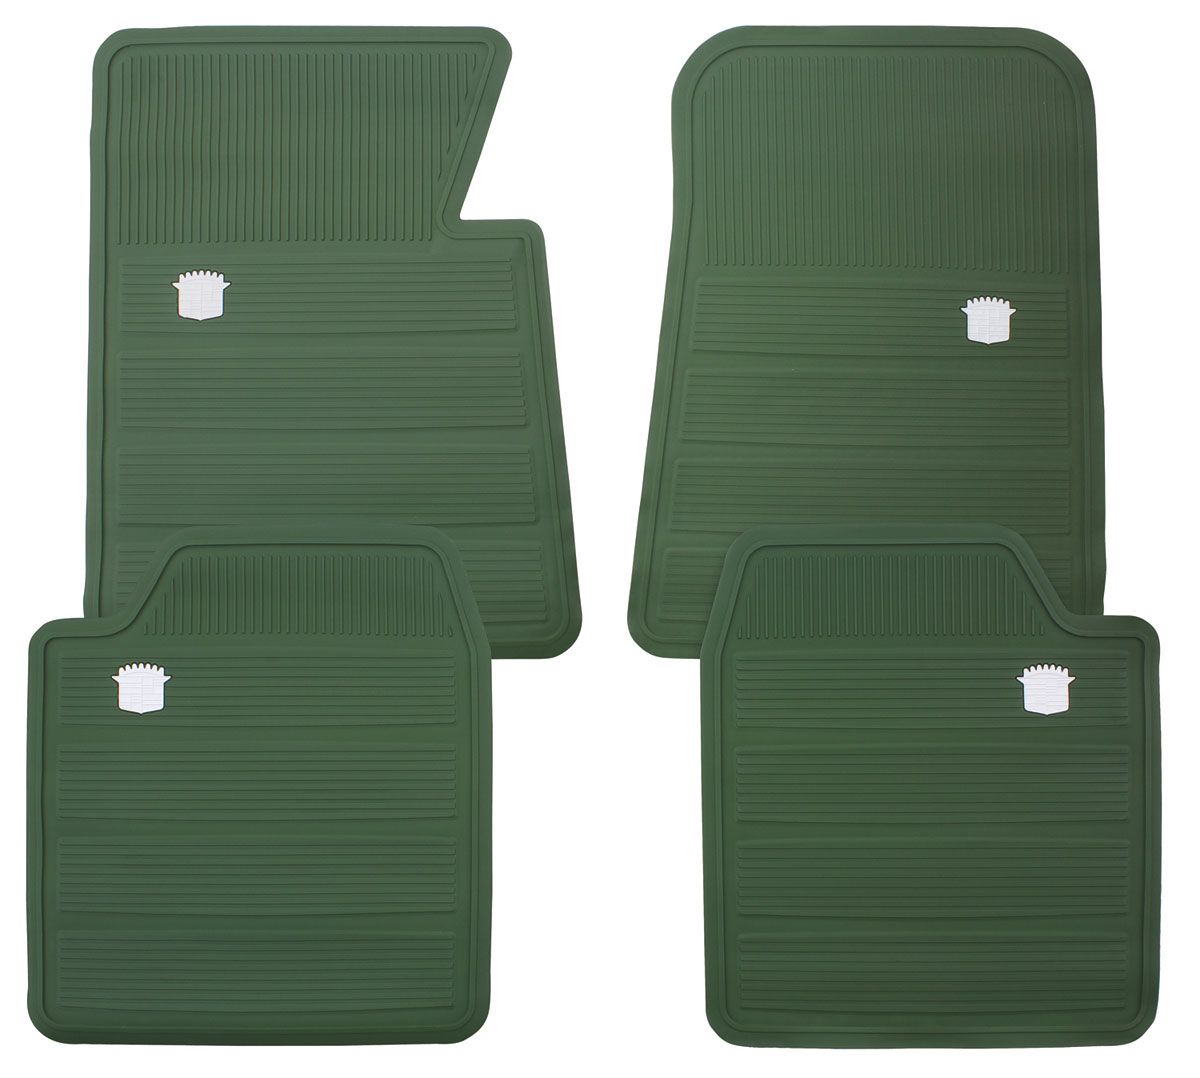 1965 70 Cadillac Floor Mats Original Style Rubber For